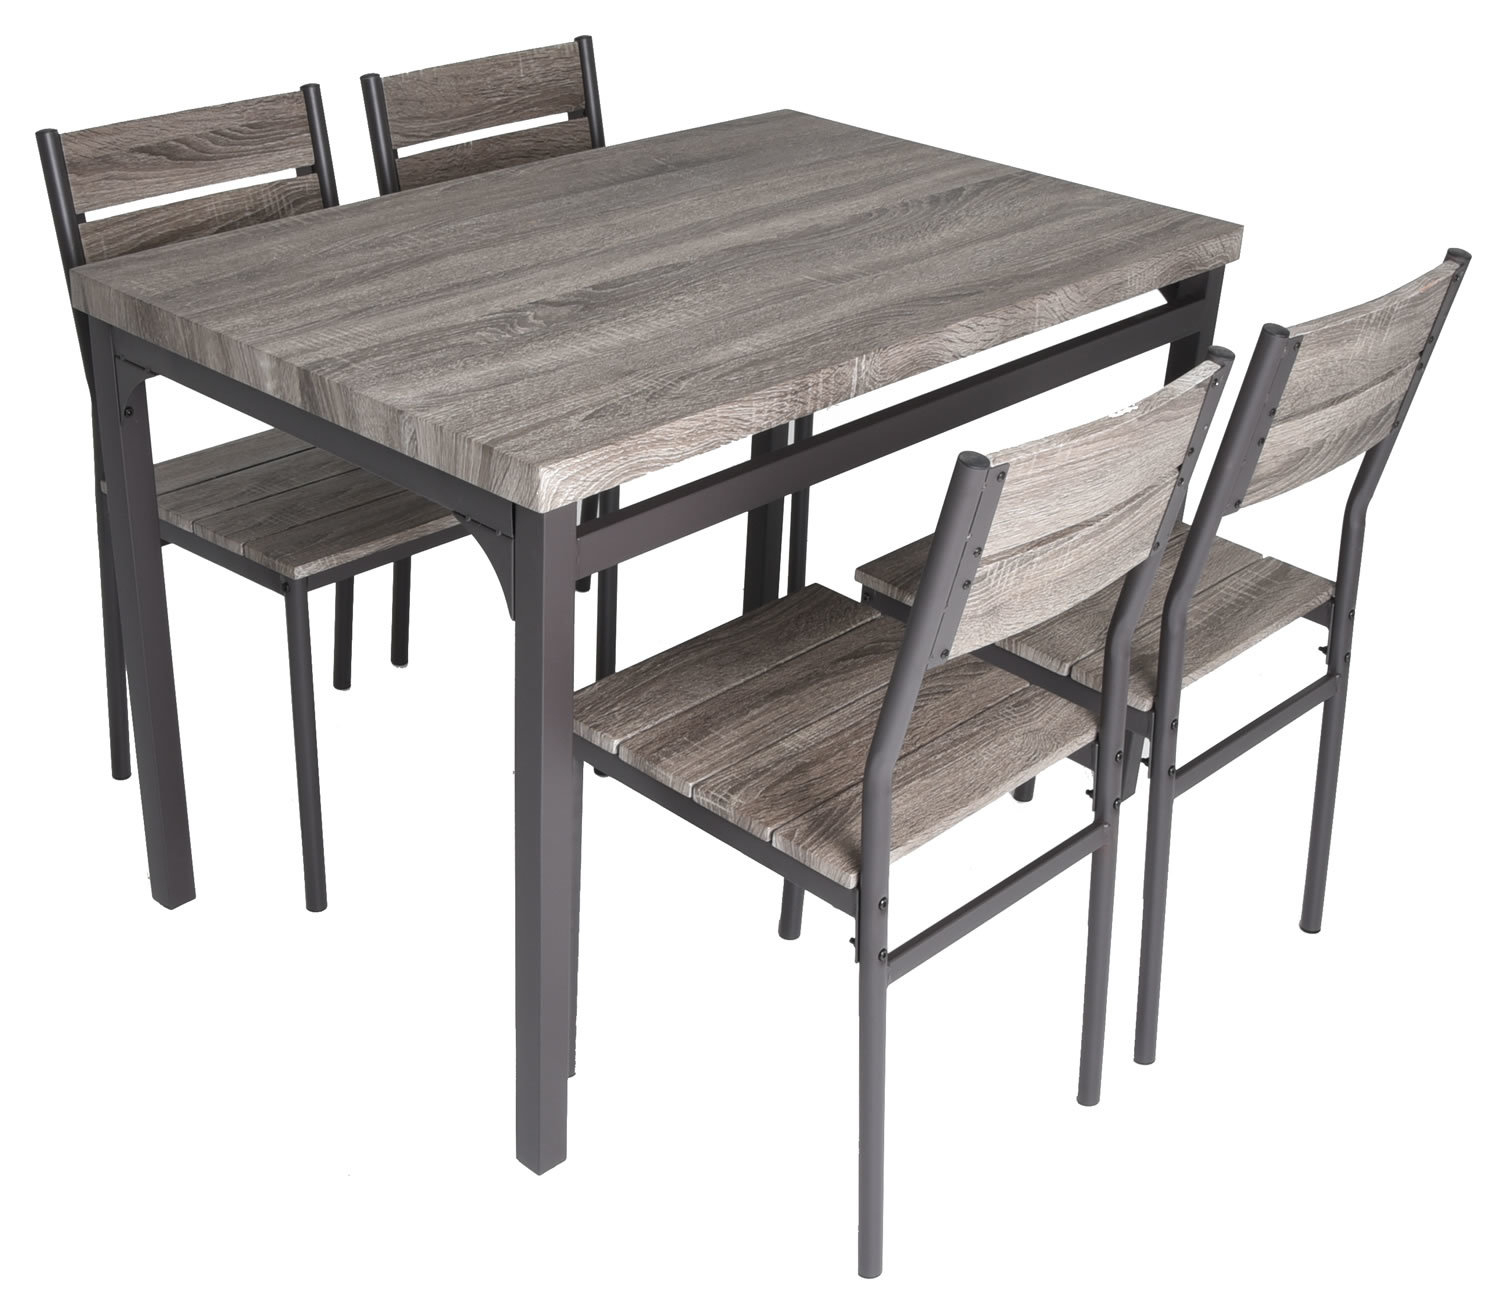 Gracie Oaks Emmeline 5 Piece Breakfast Nook Dining Set & Reviews Inside 2017 Conover 5 Piece Dining Sets (#7 of 20)